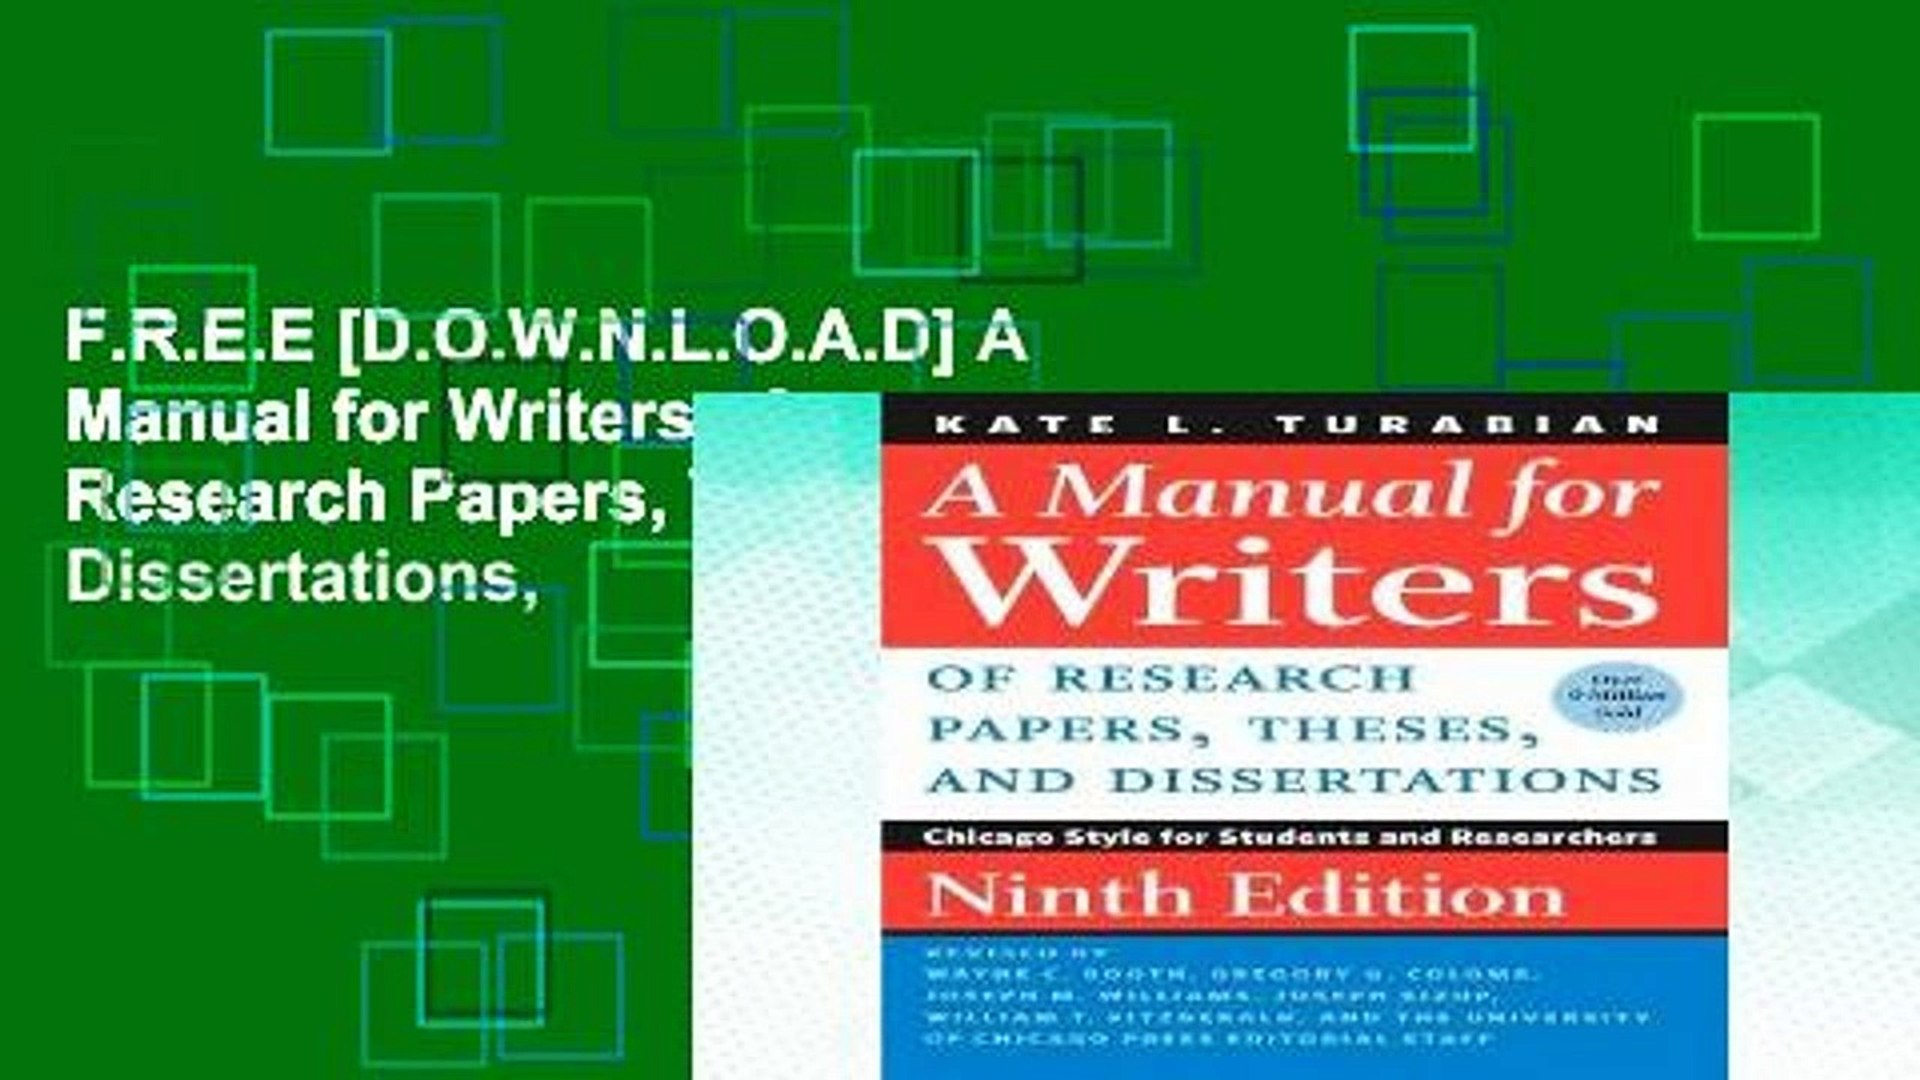 013 X1080 Kcn Research Paper Manual For Writers Of Papers Theses And Magnificent Dissertations A Amazon 9th Edition Pdf 8th 13 Full